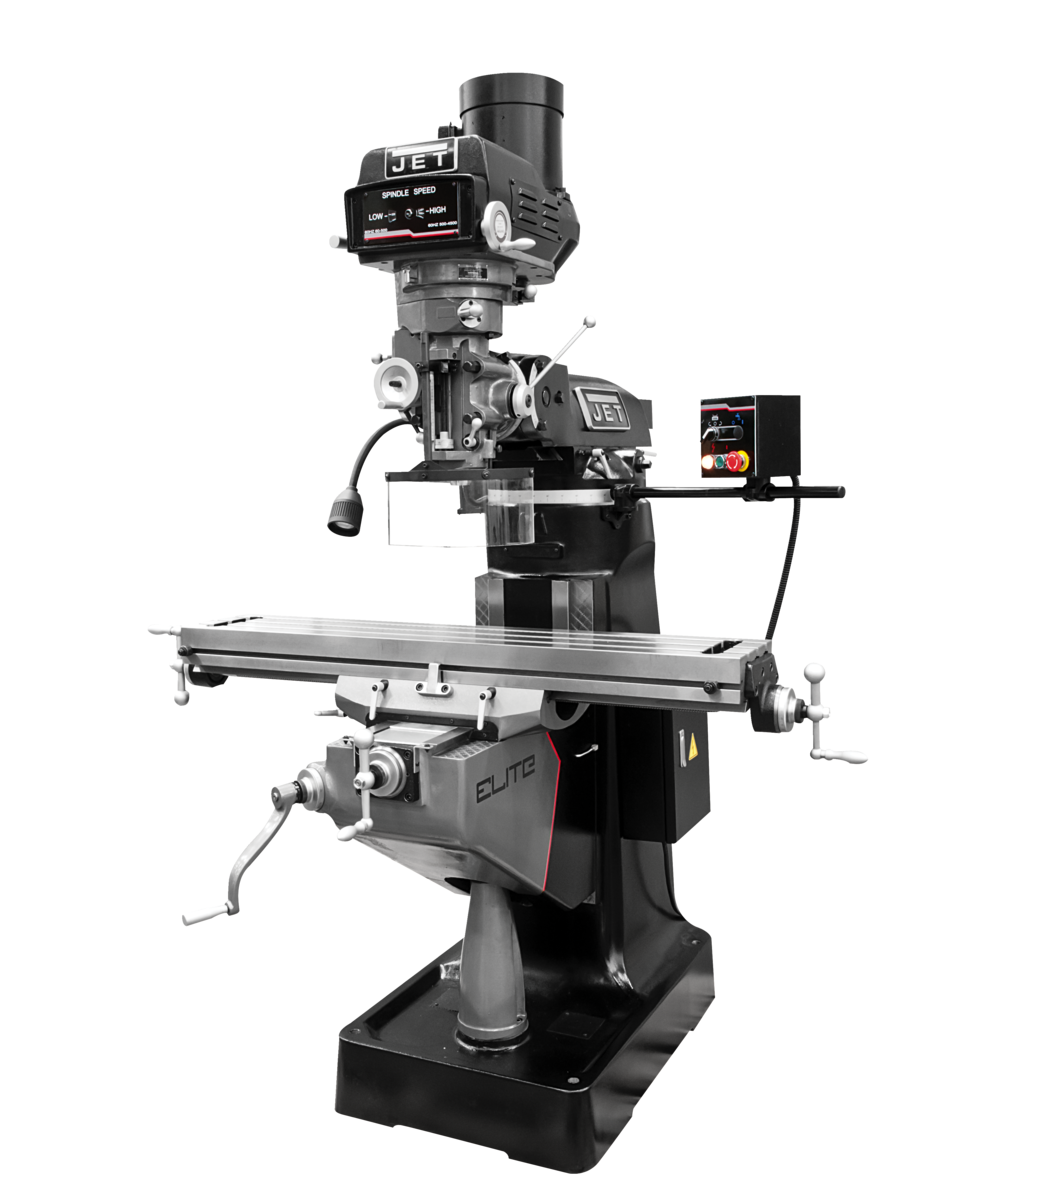 ETM-949 Mill with 3-Axis ACU-RITE 303  (Quill) DRO and X, Y-Axis JET Powerfeeds